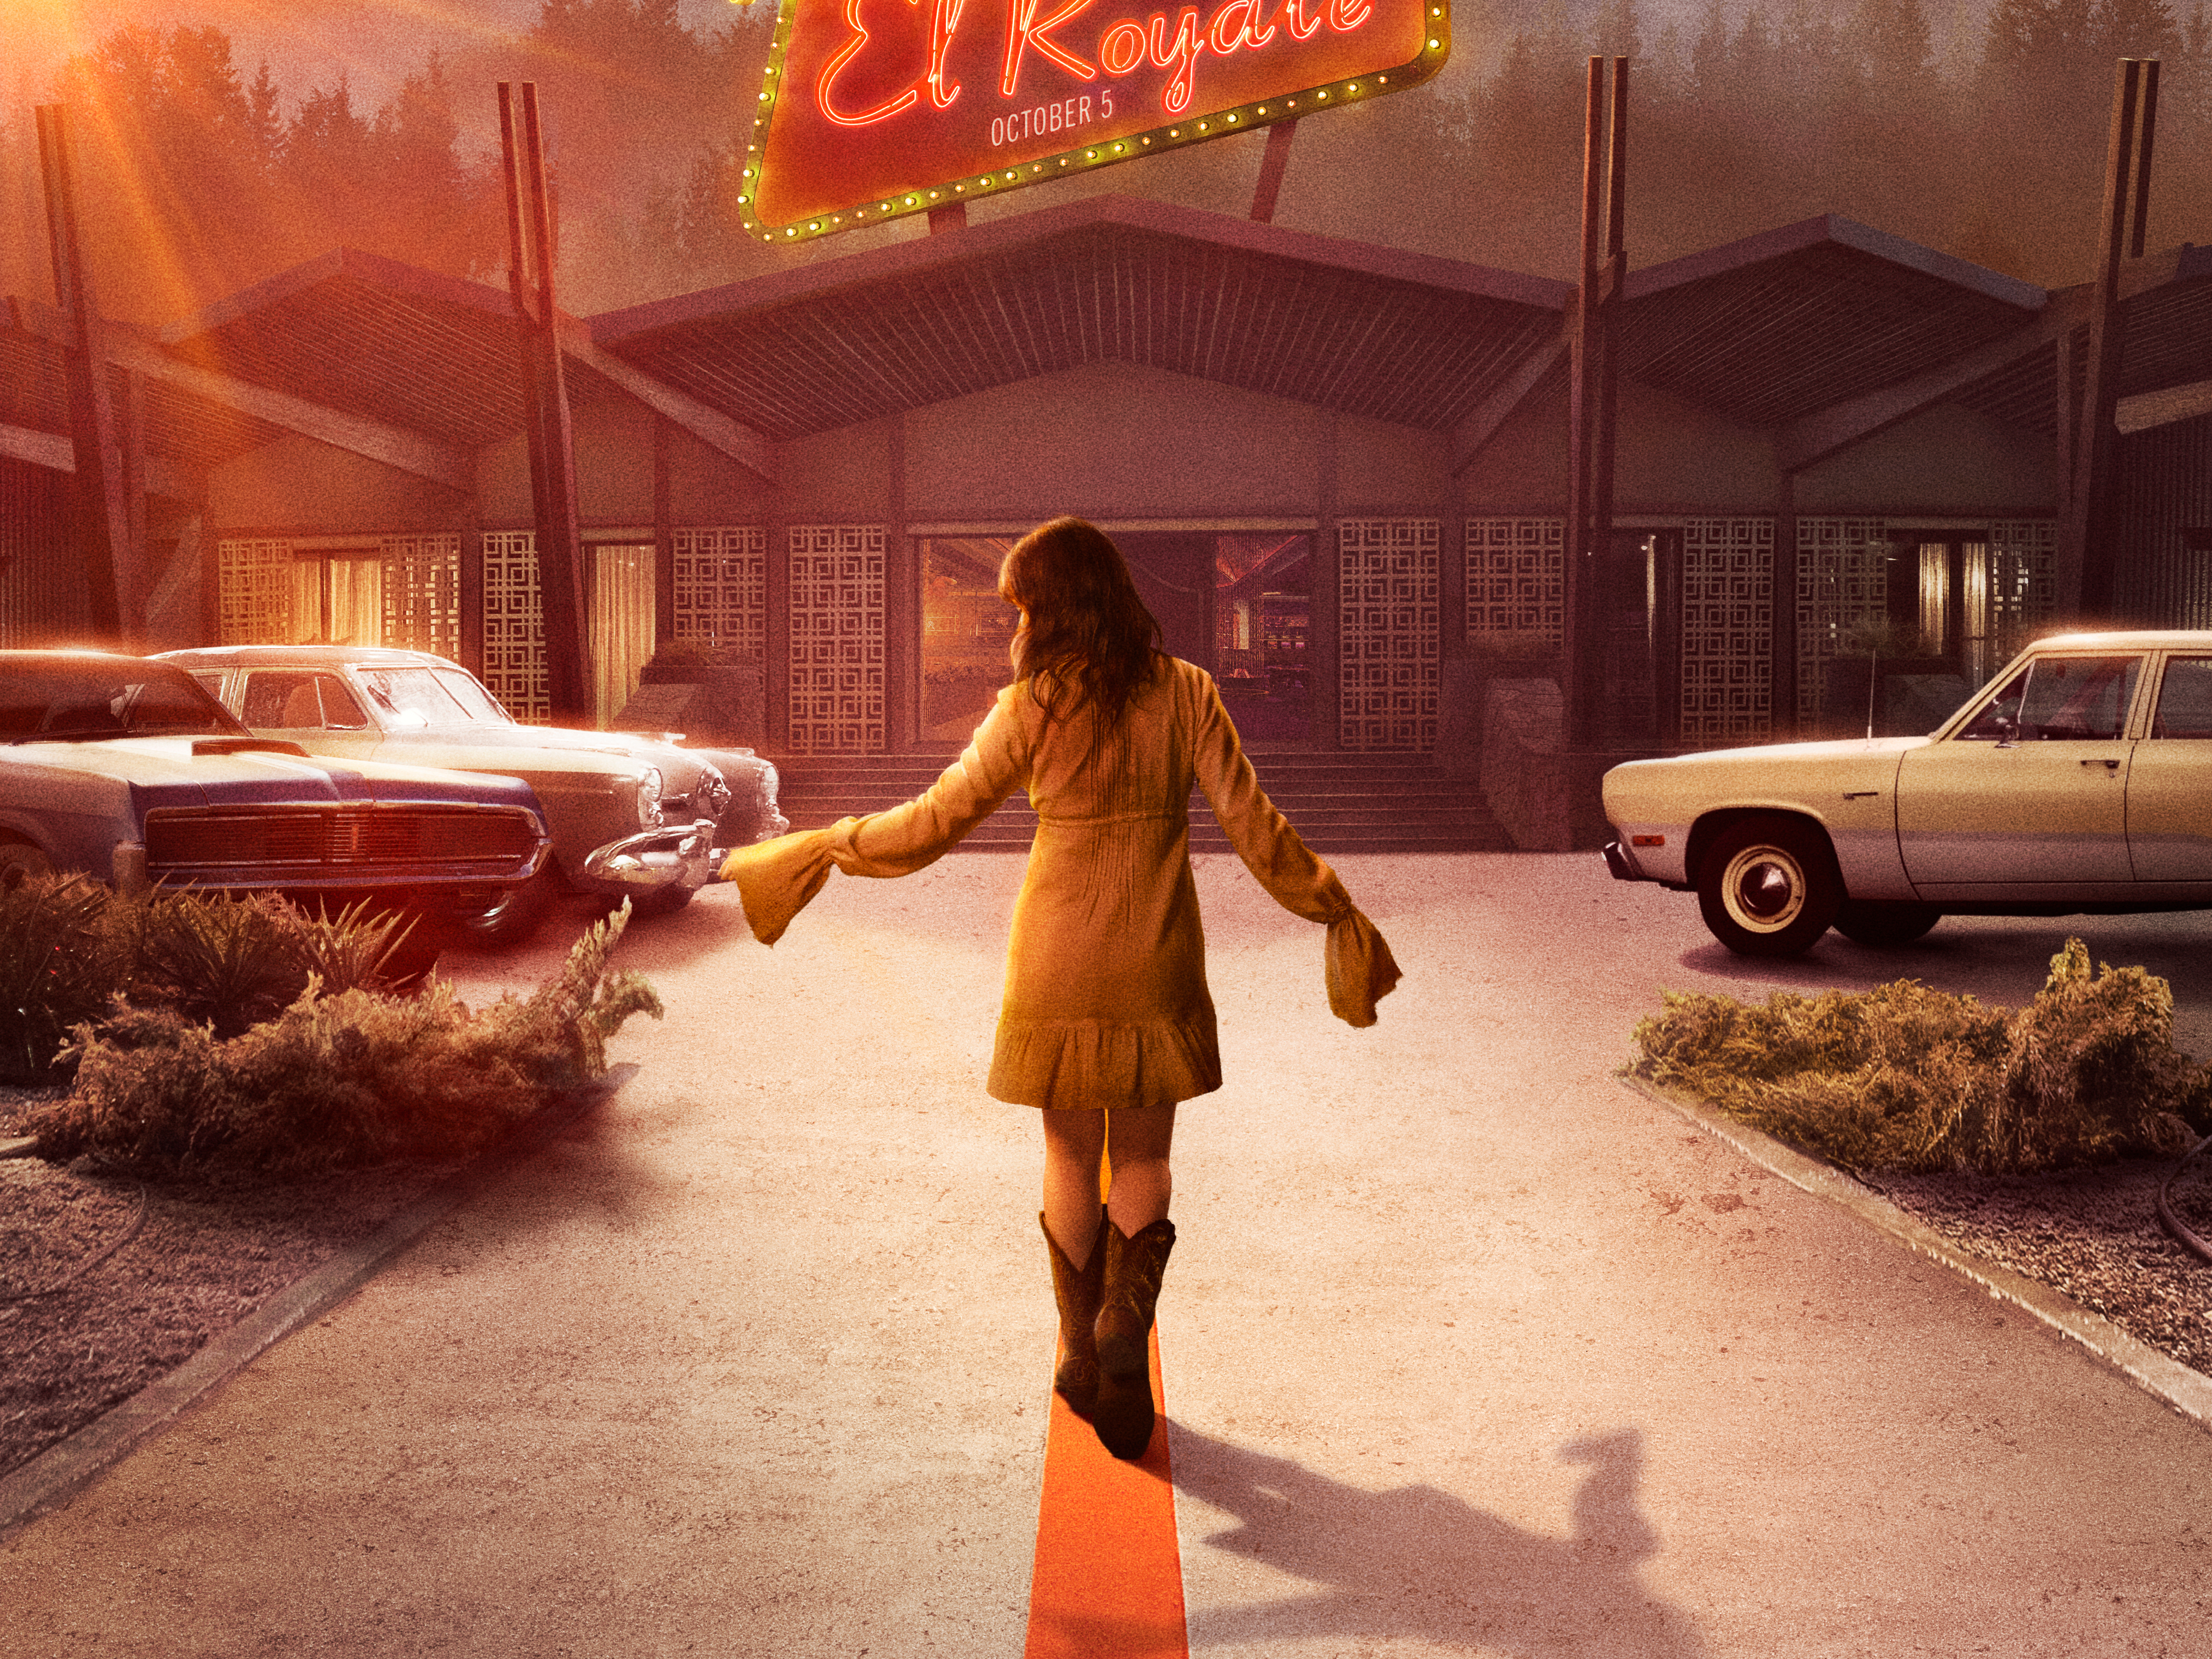 Bad Times At The El Royale 4k Ultra Hd Wallpaper Background